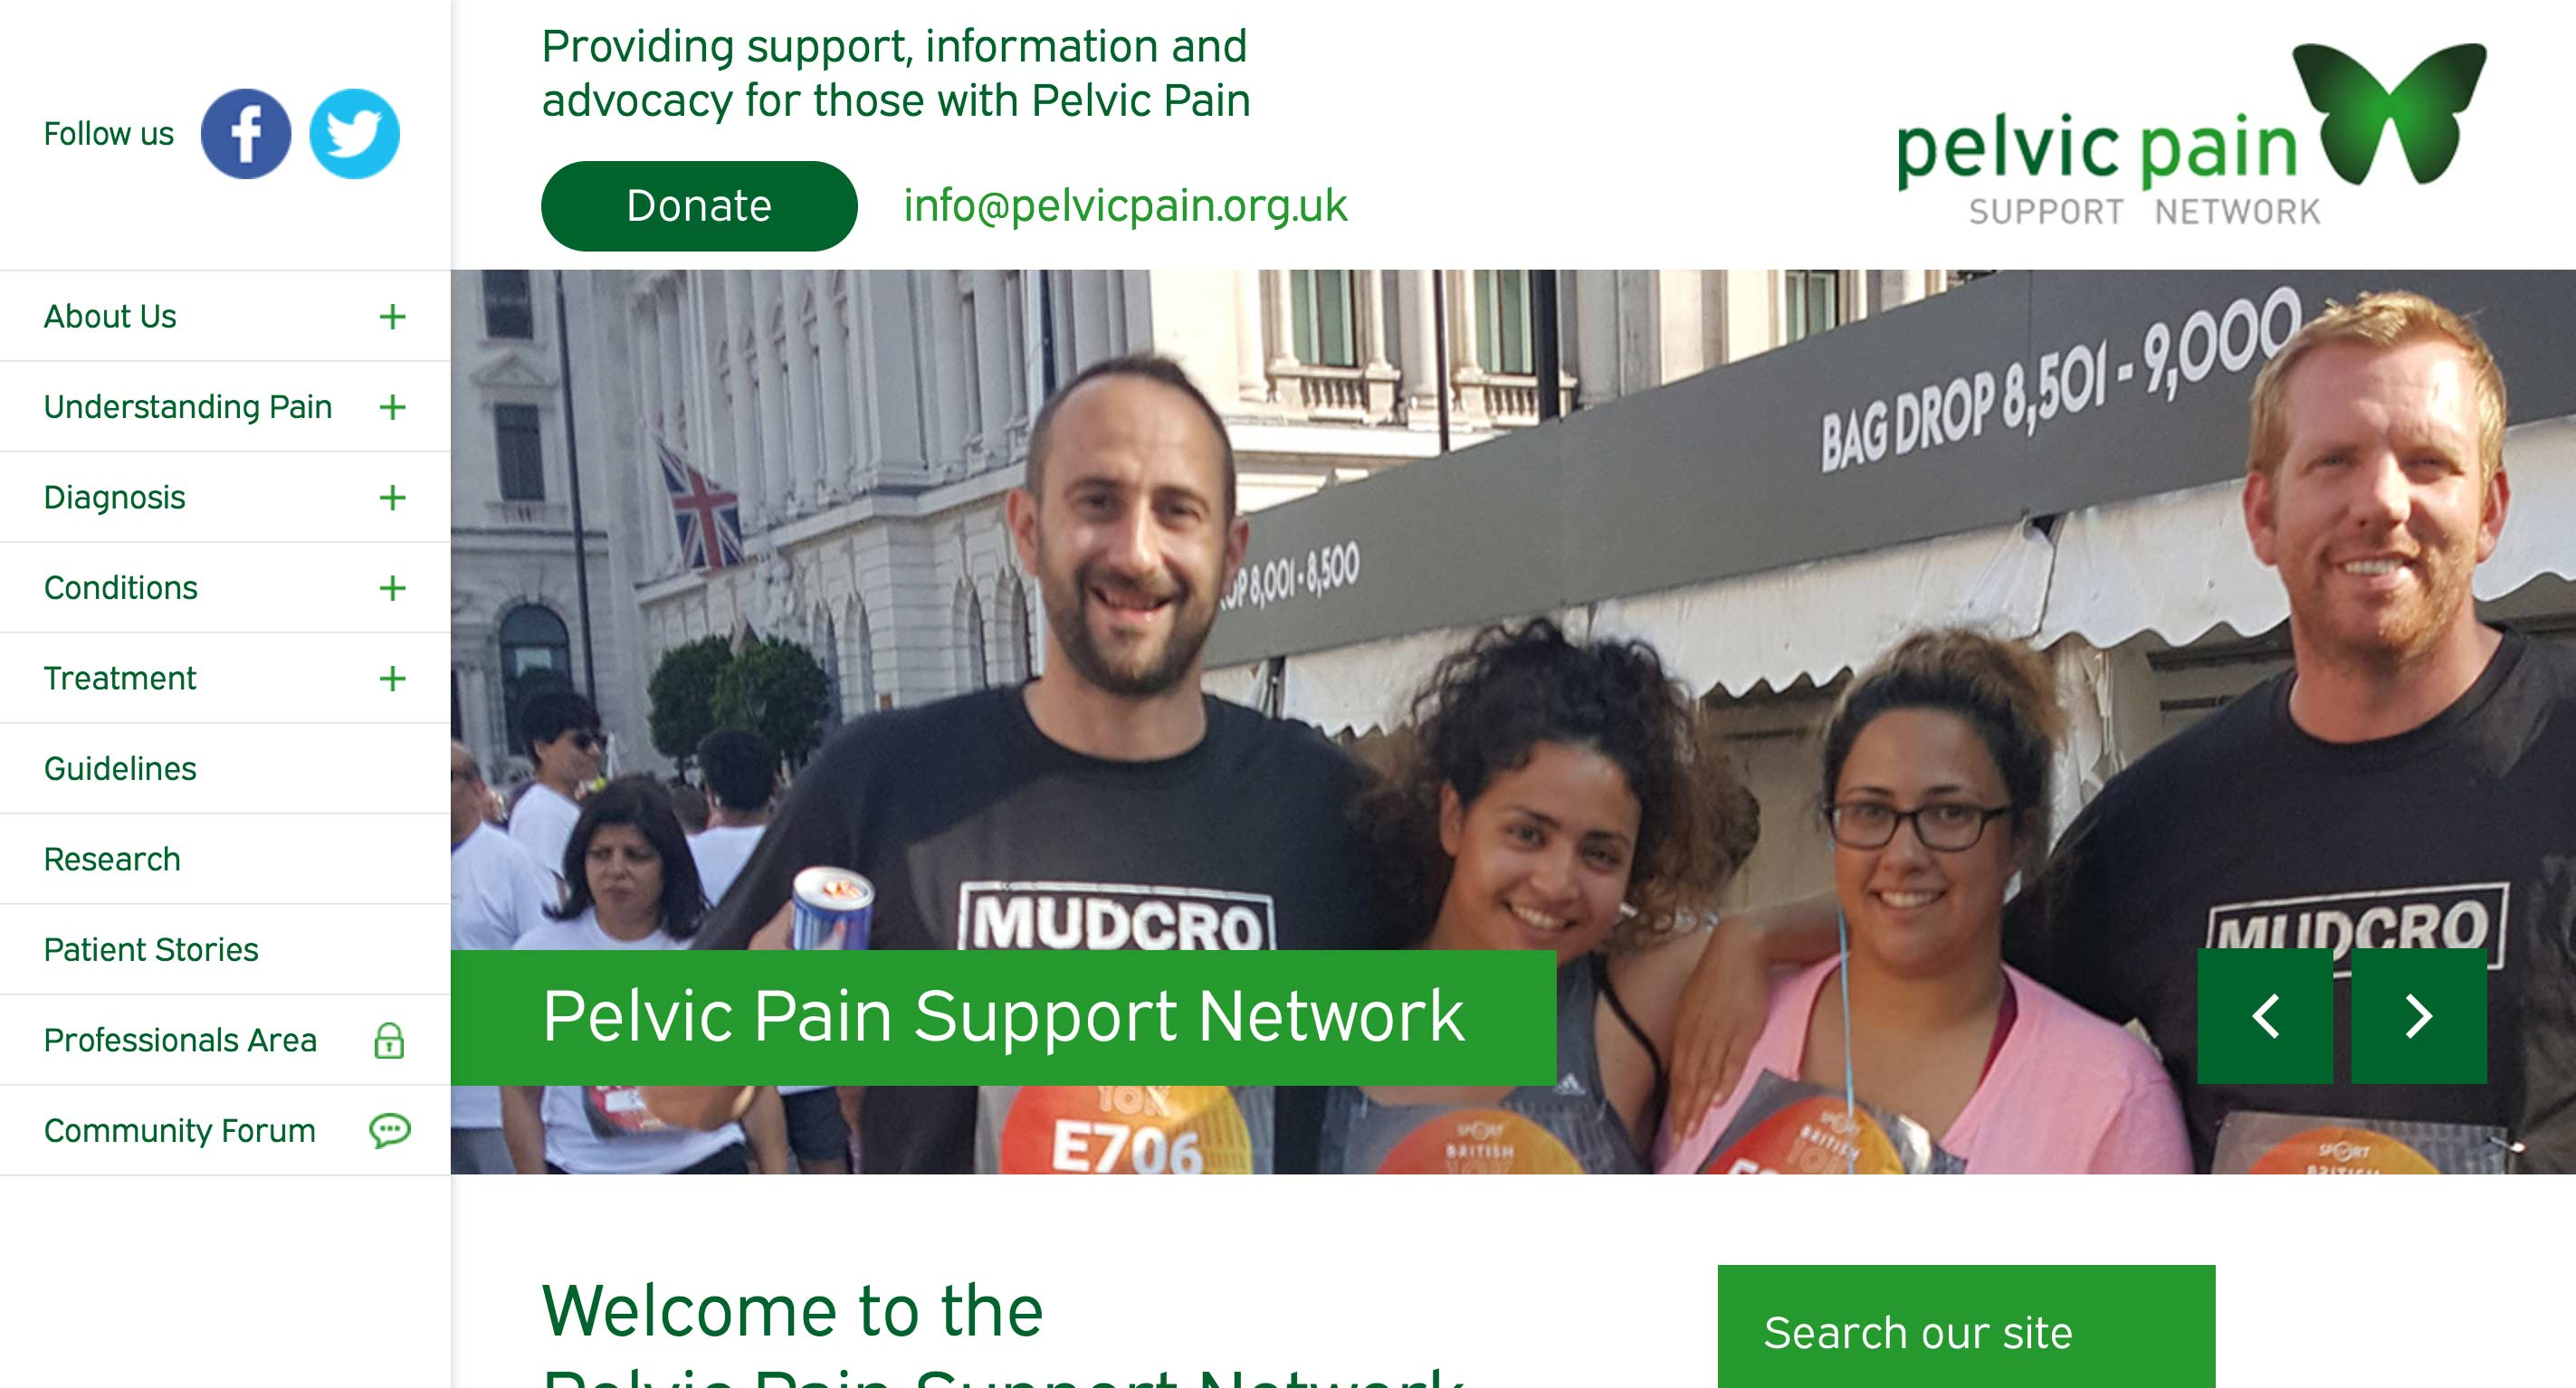 The Pelvic Pain Support Network